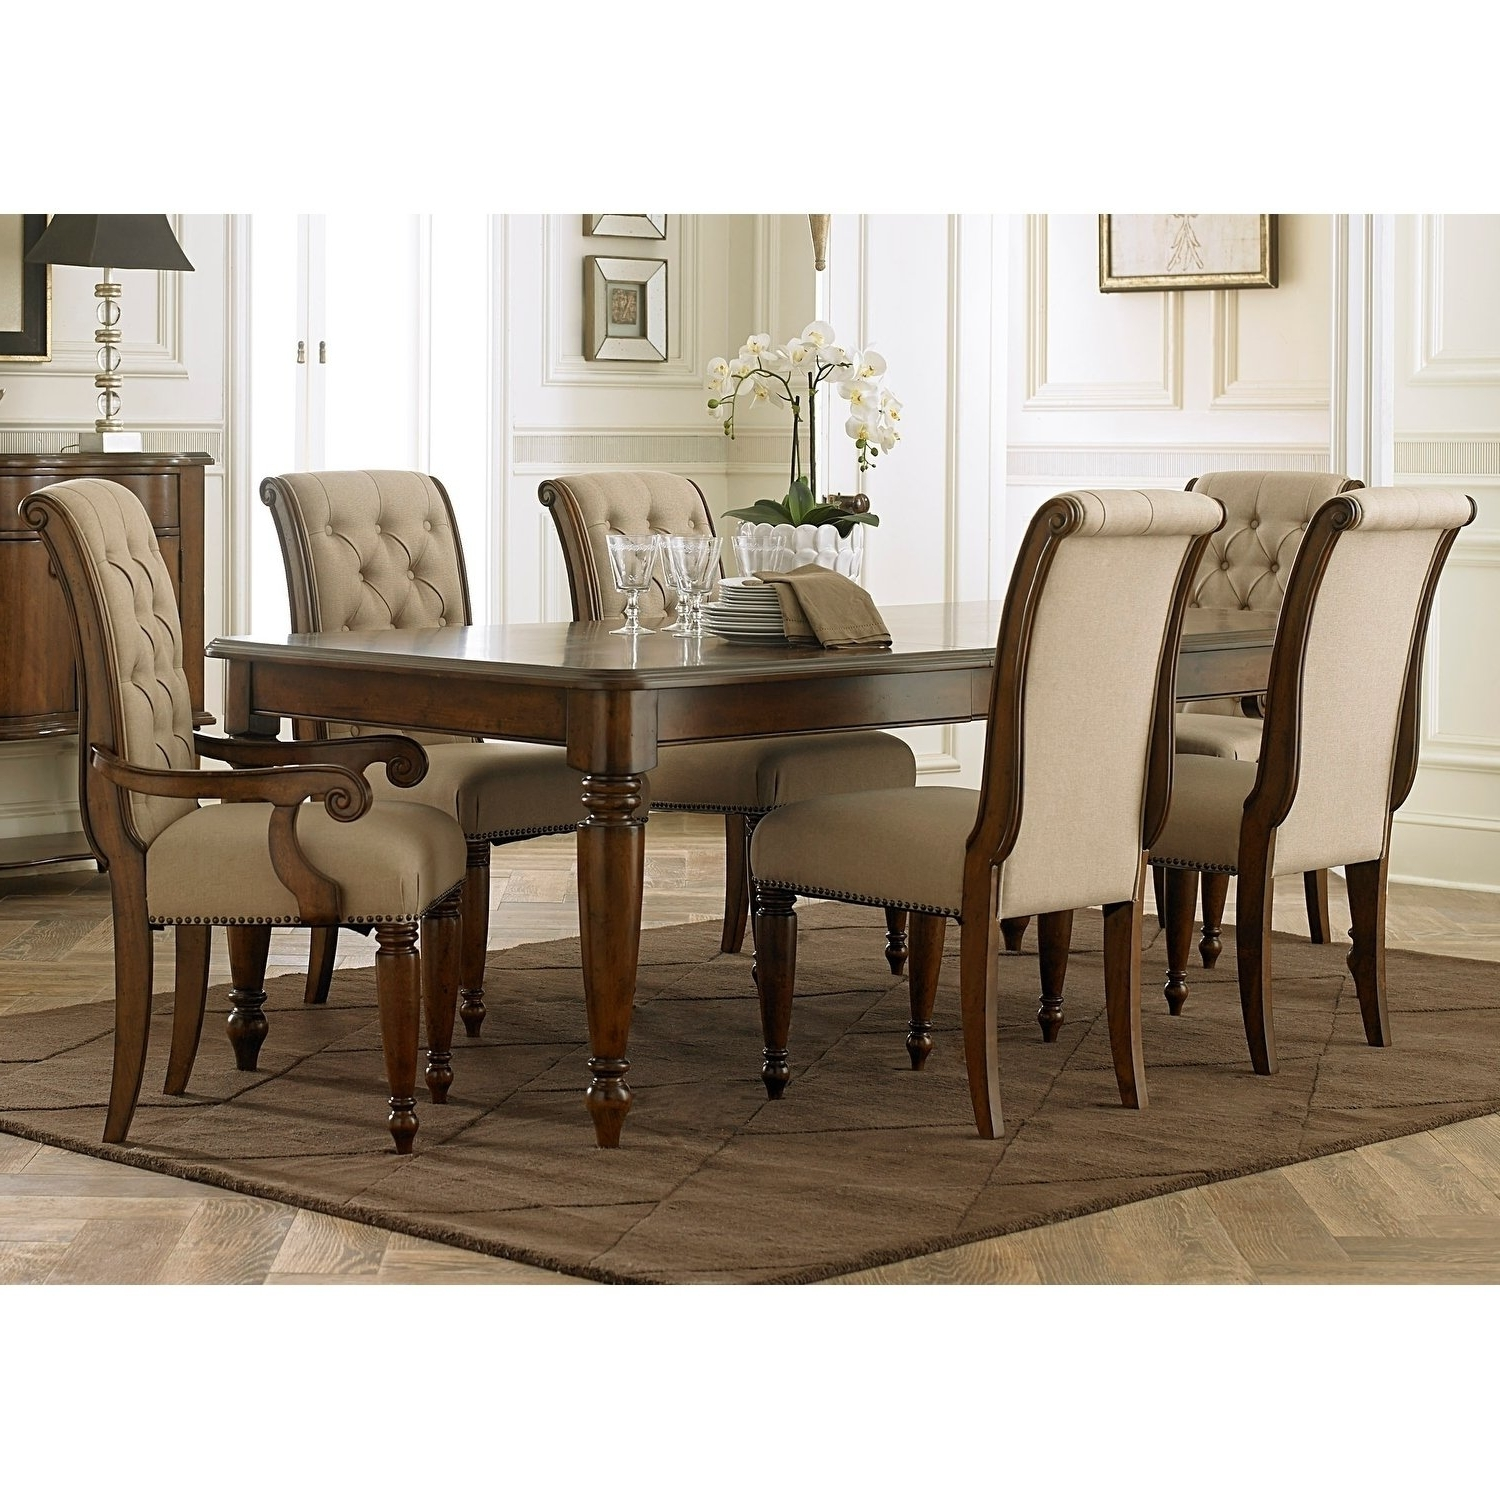 Trendy Shop Cotswold Cinnamon 7 Piece Rectangular Dining Table Set – On Pertaining To Dining Tables Sets (View 6 of 25)